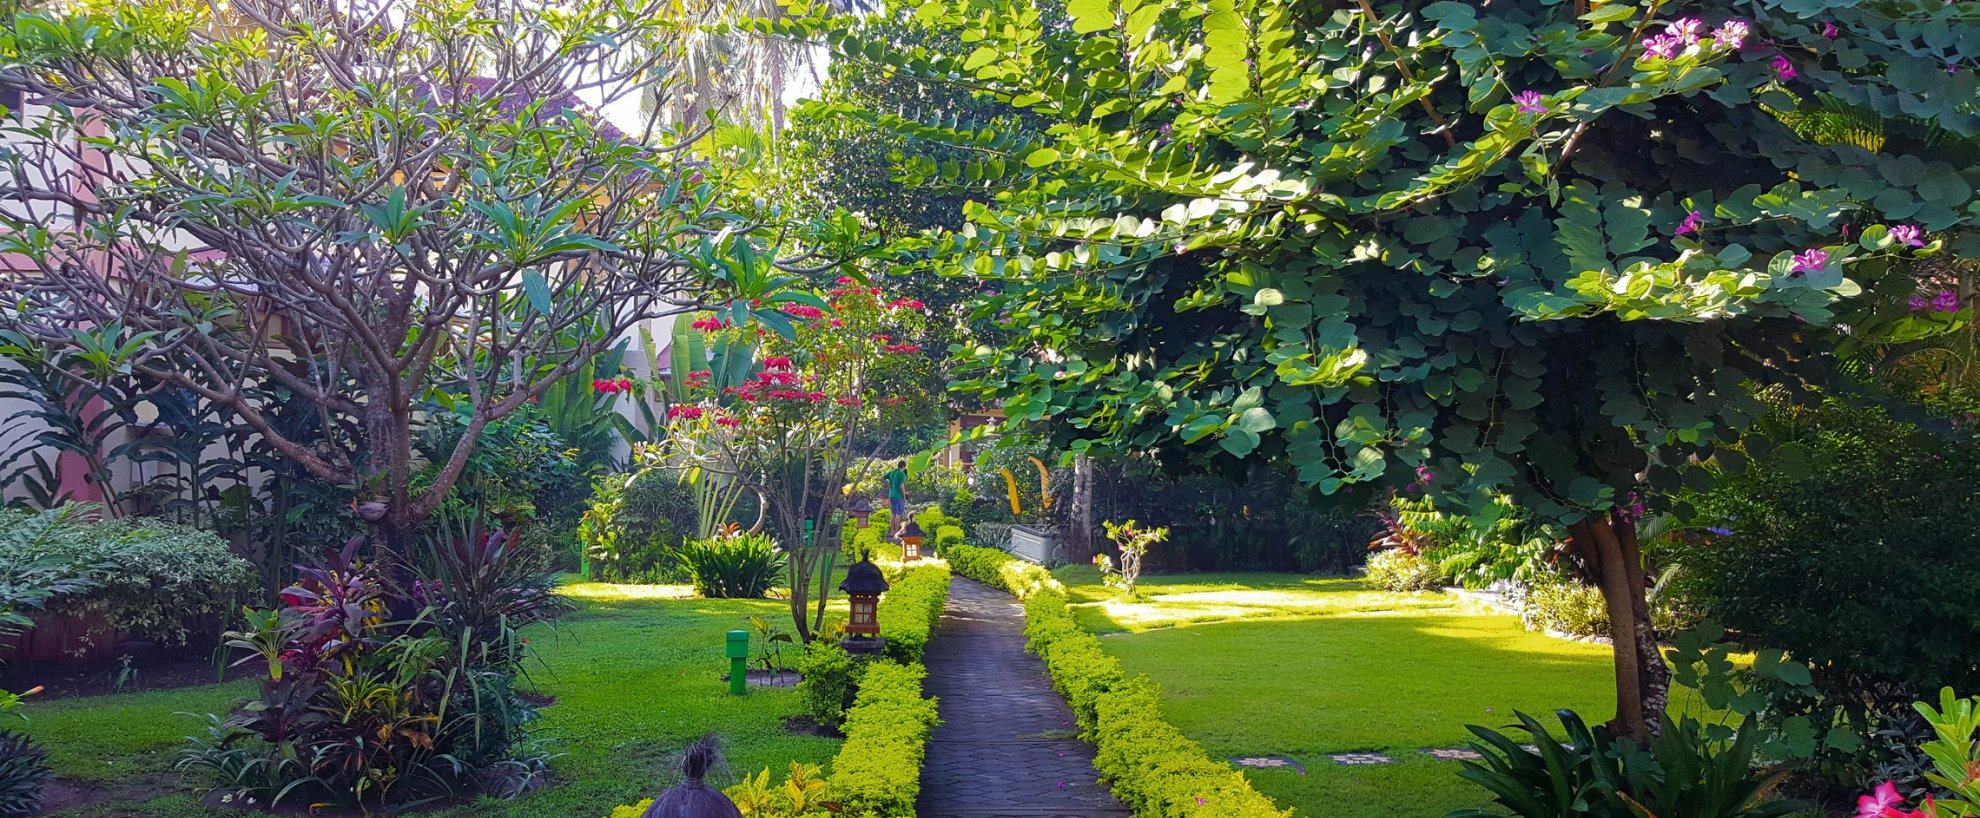 Indonesien Bali Holiway Garden Resort and Spa Garten Anlage